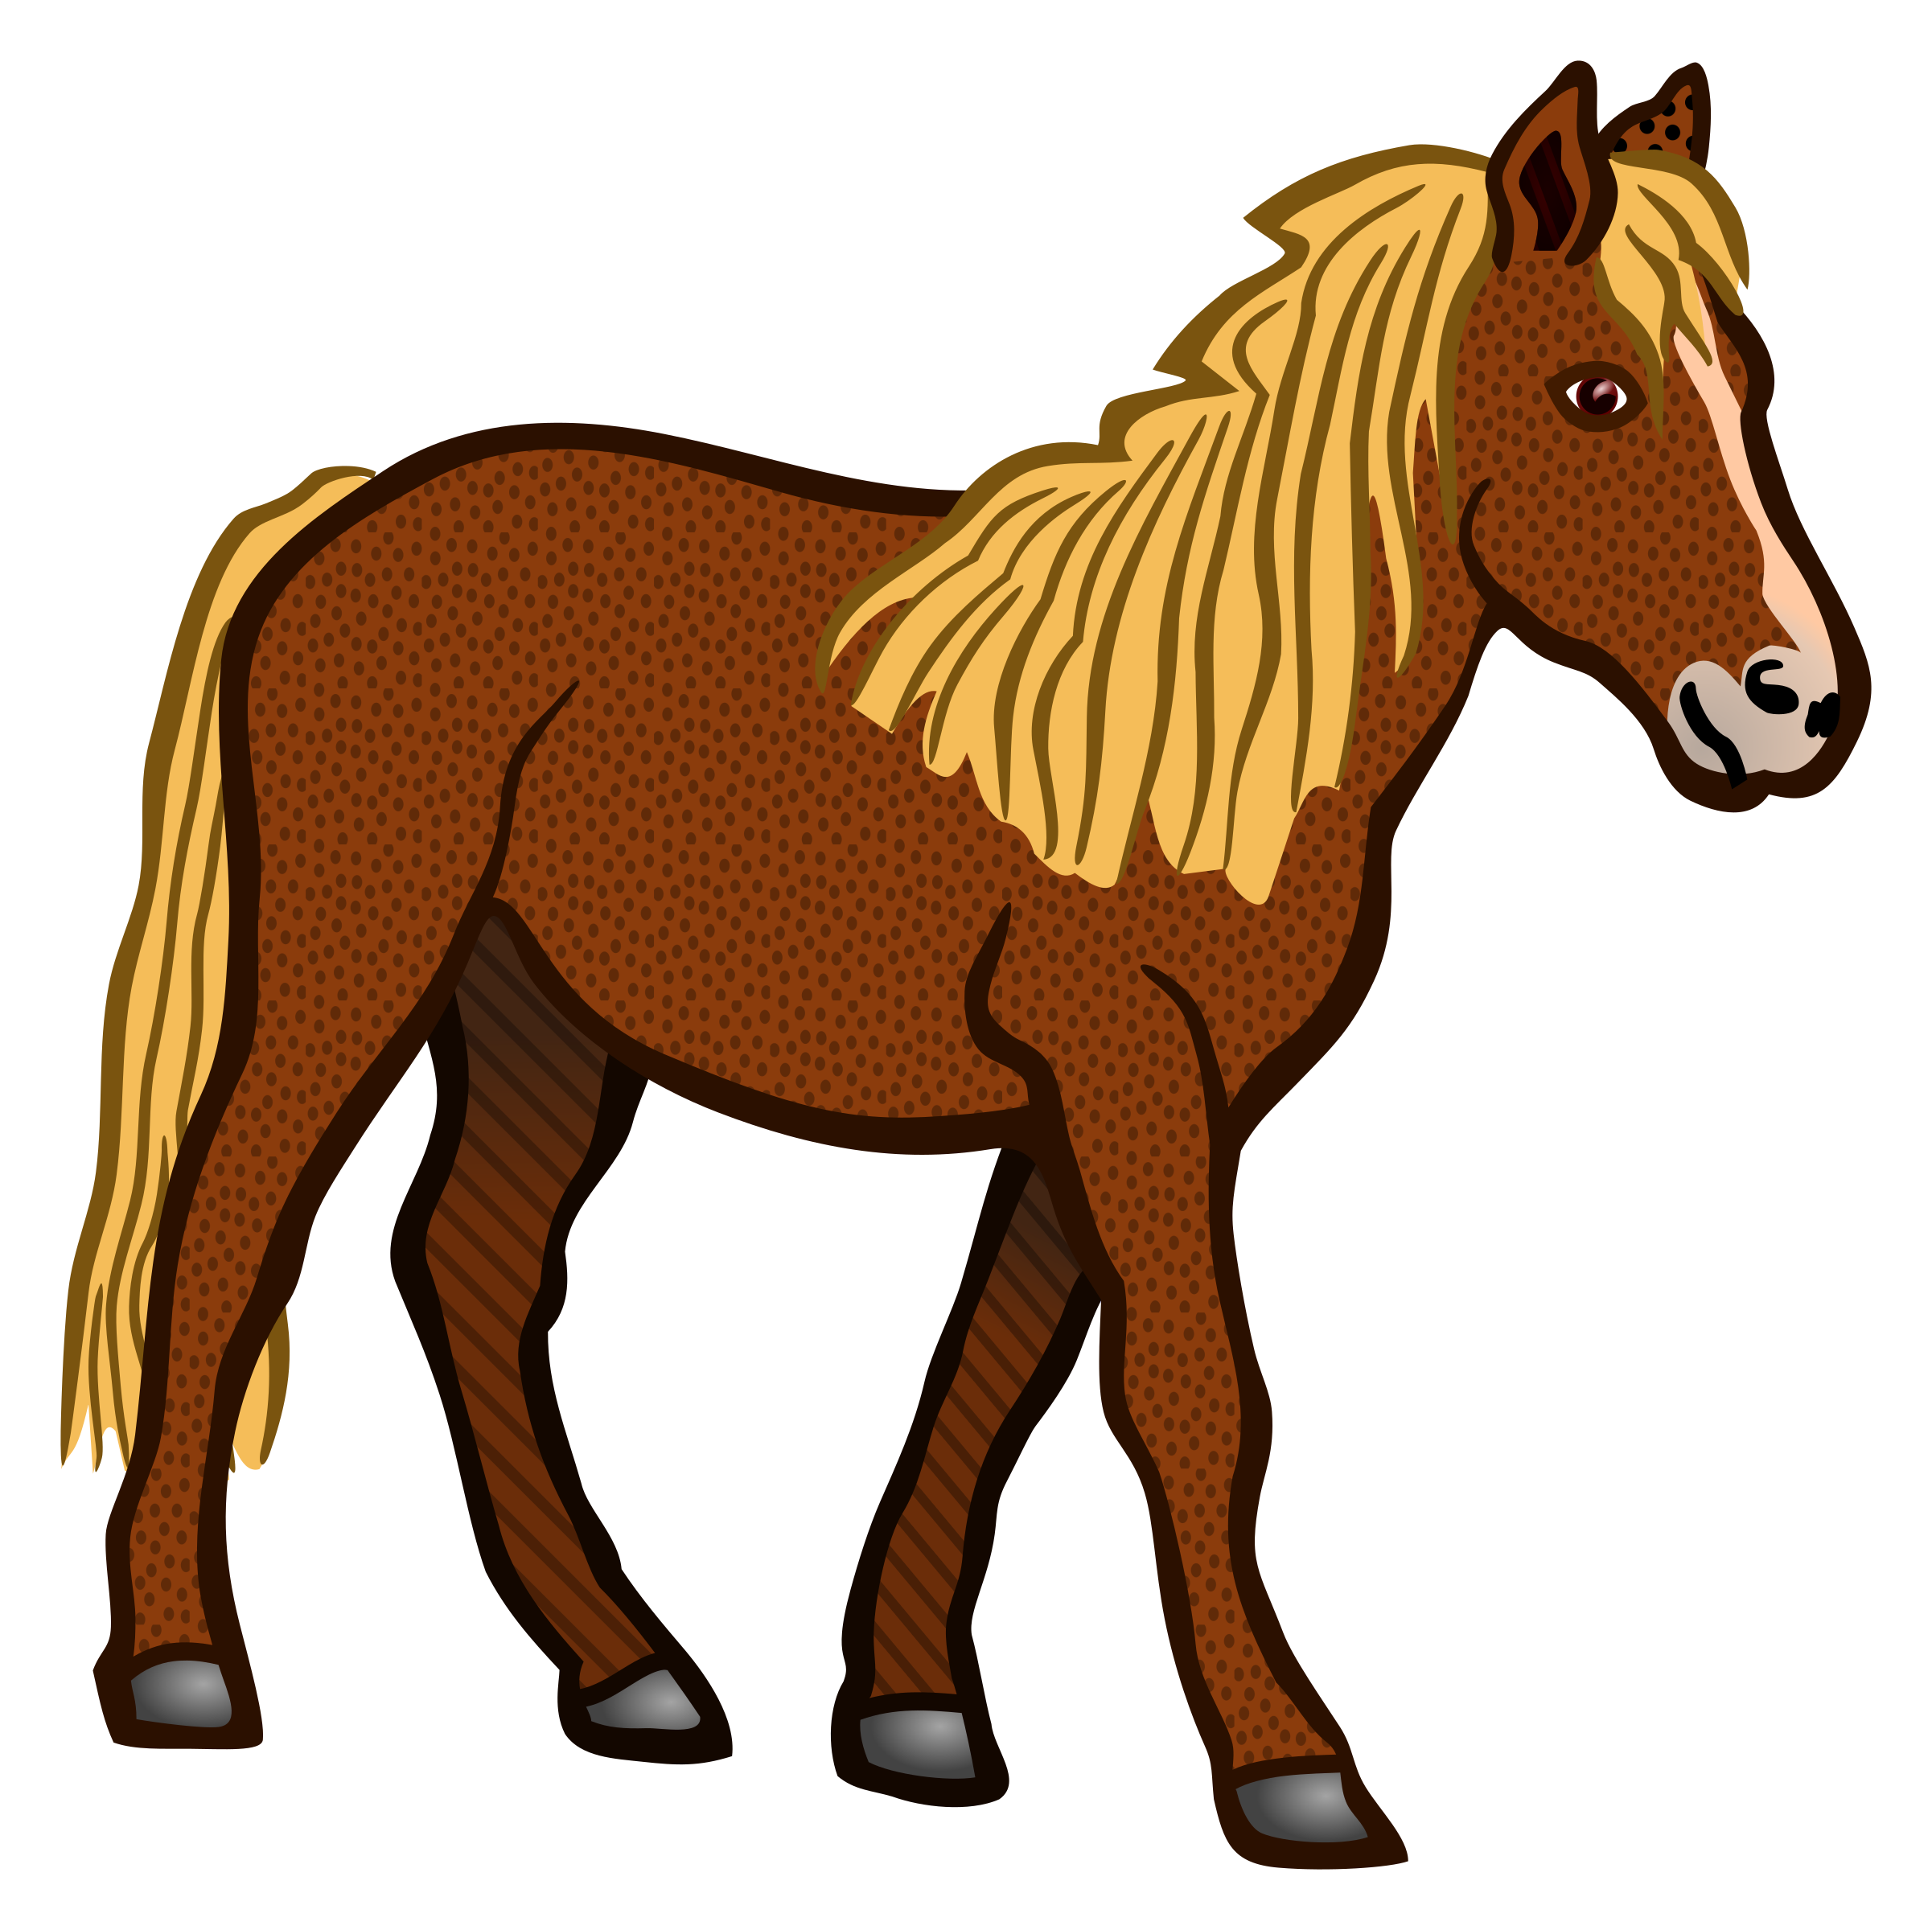 Coloured big image png. Animals clipart horse